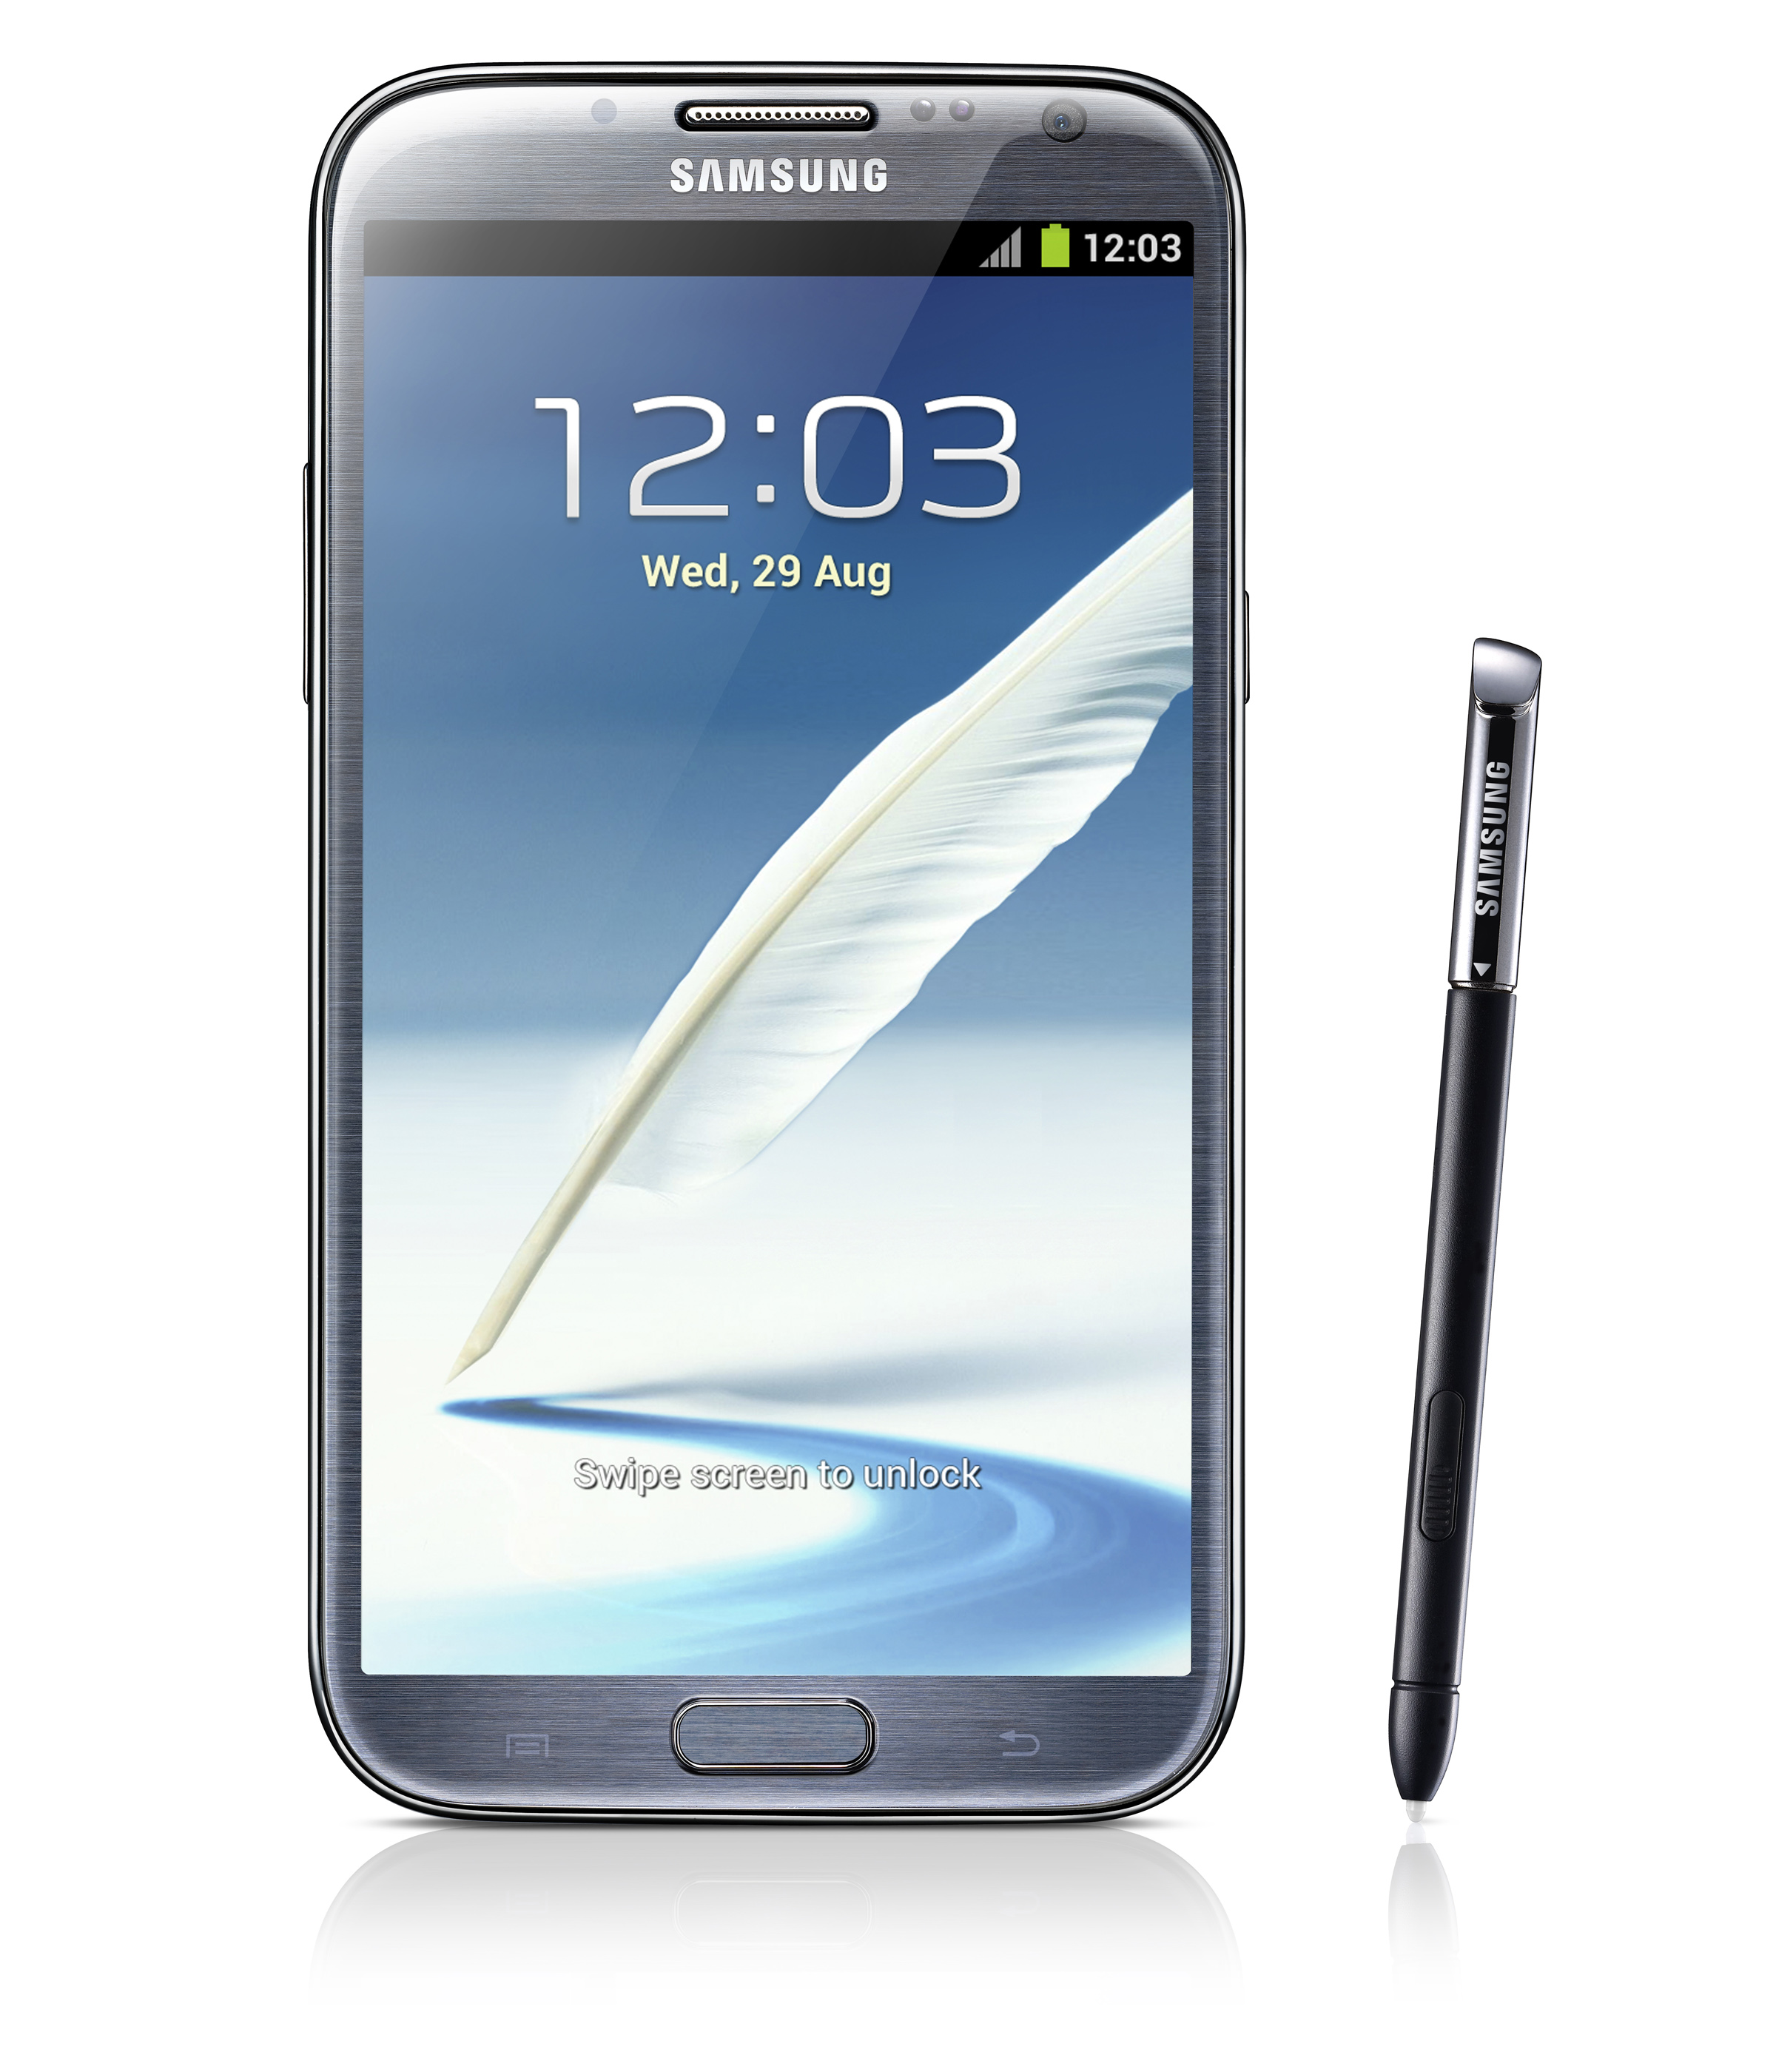 Samsung Galaxy Note II tablet